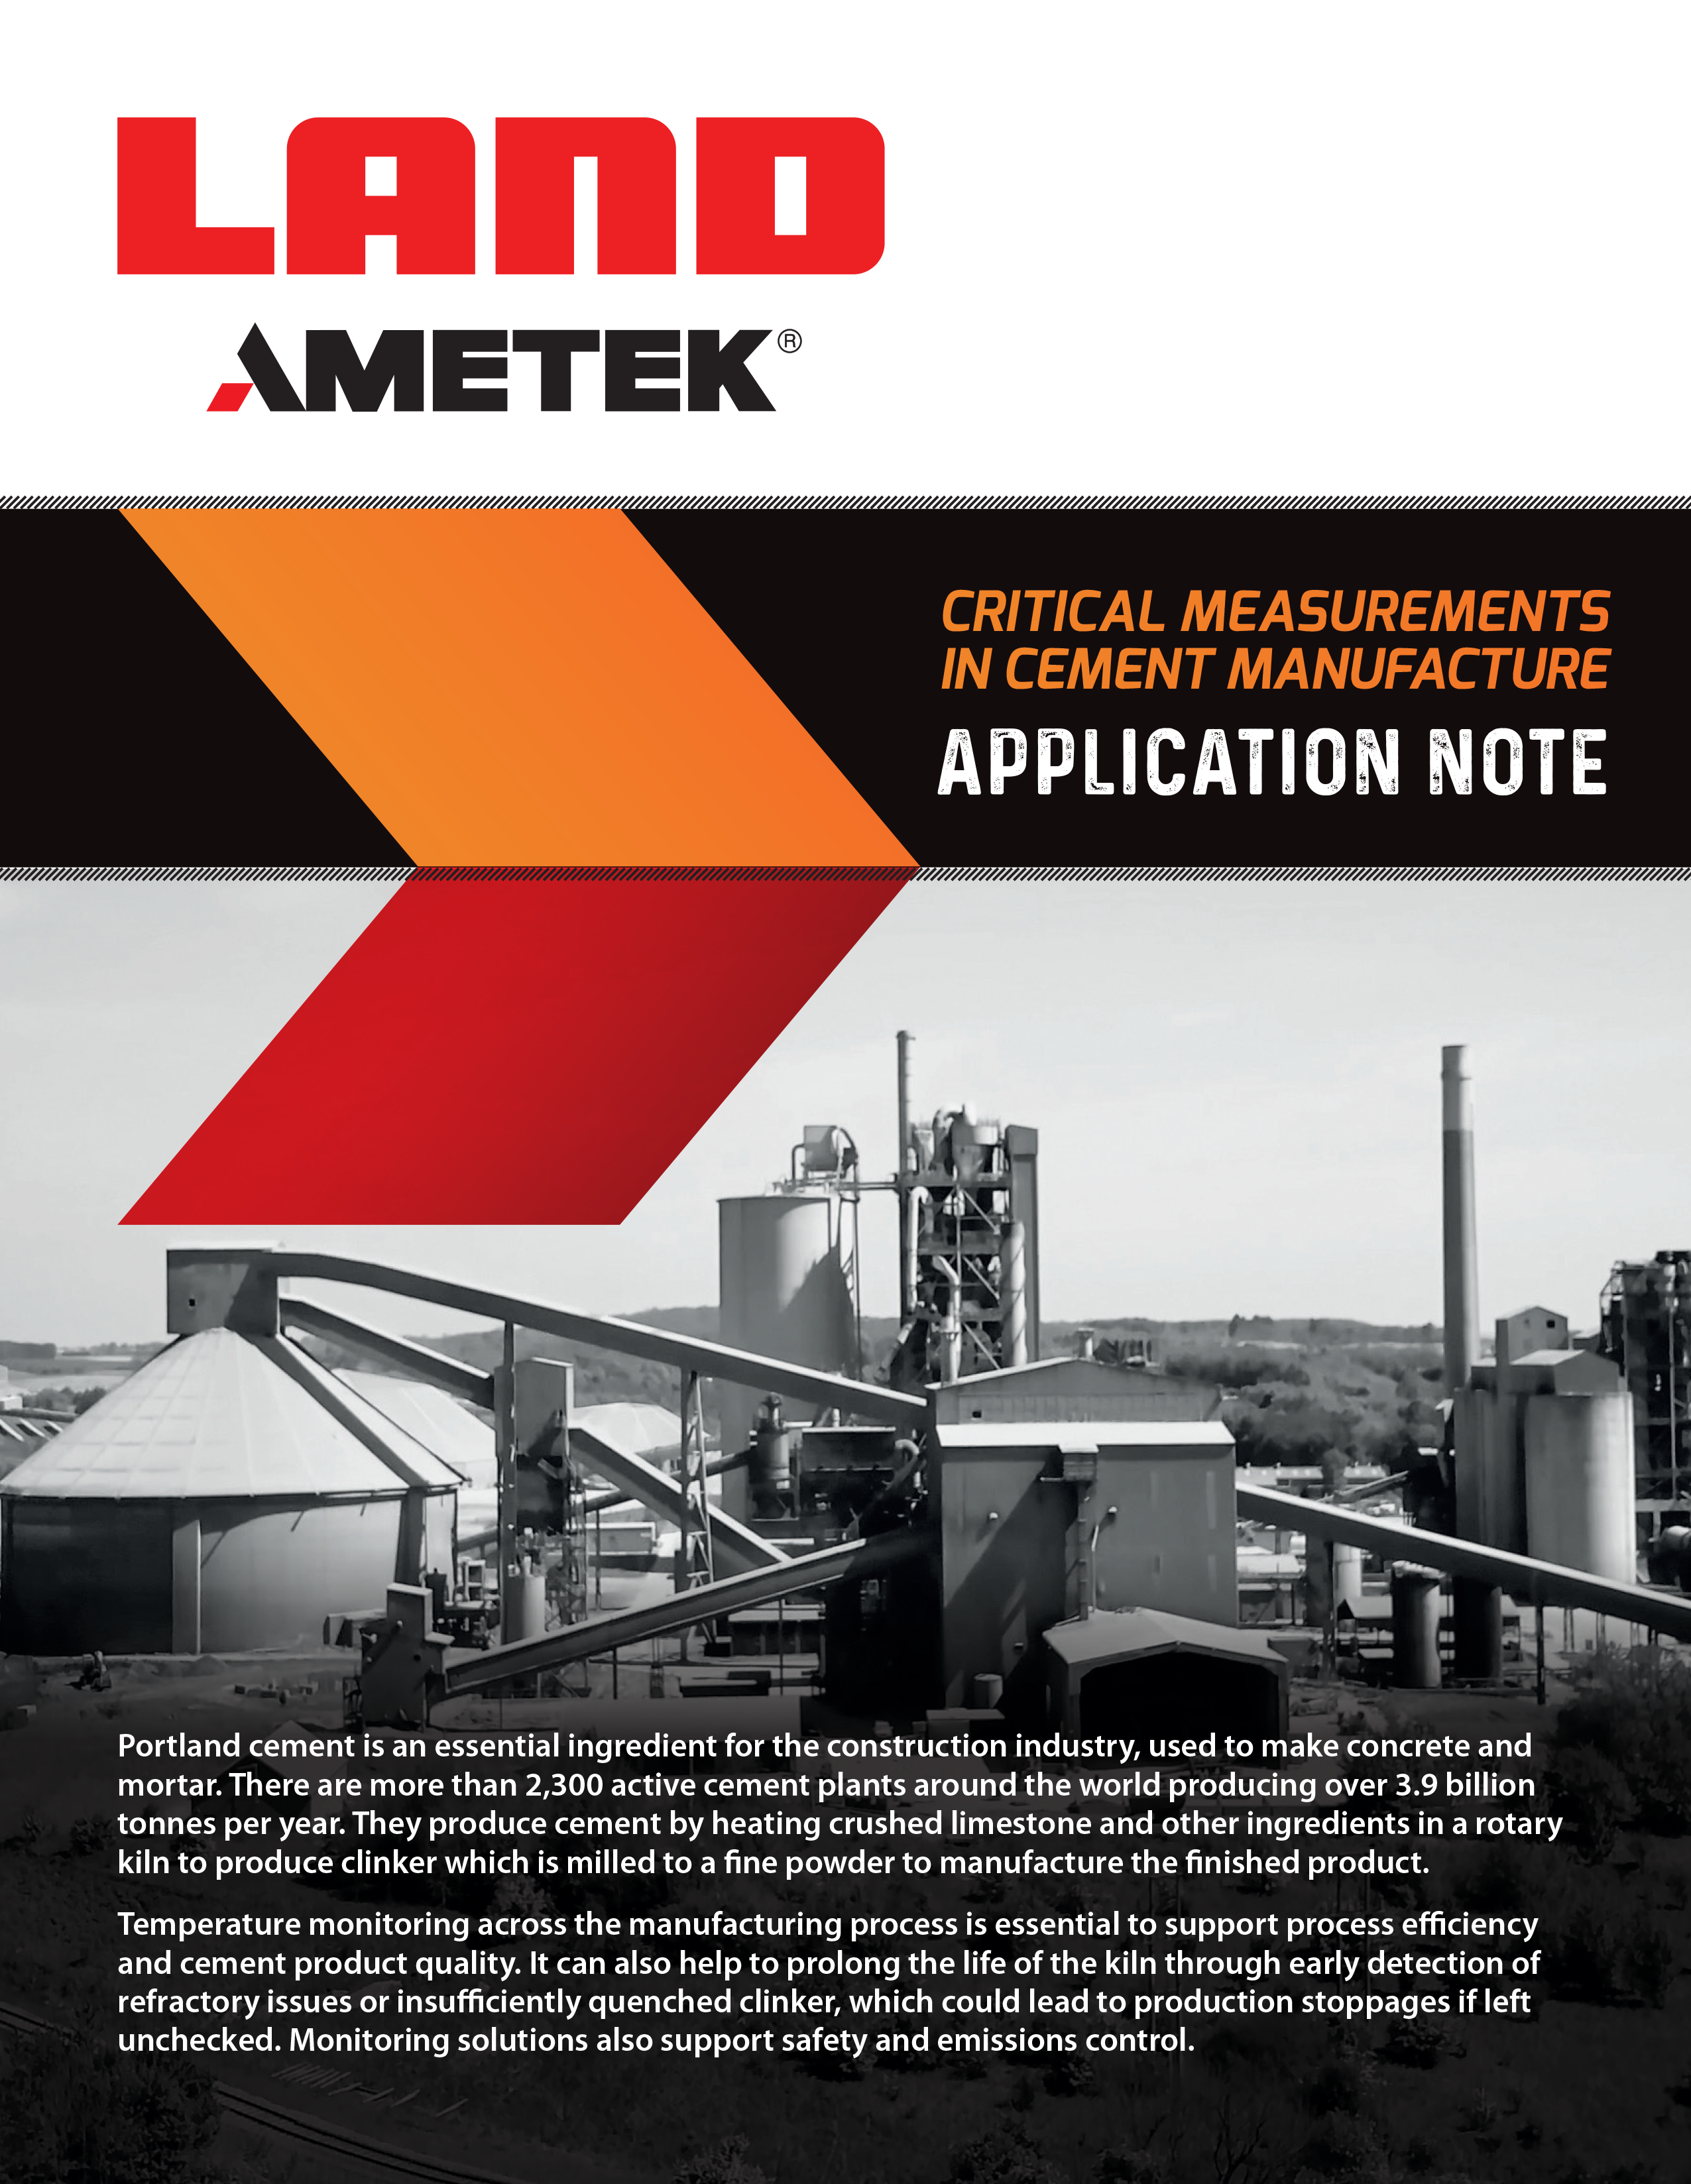 Application Note - Critical Measurement in Cement Manufacture